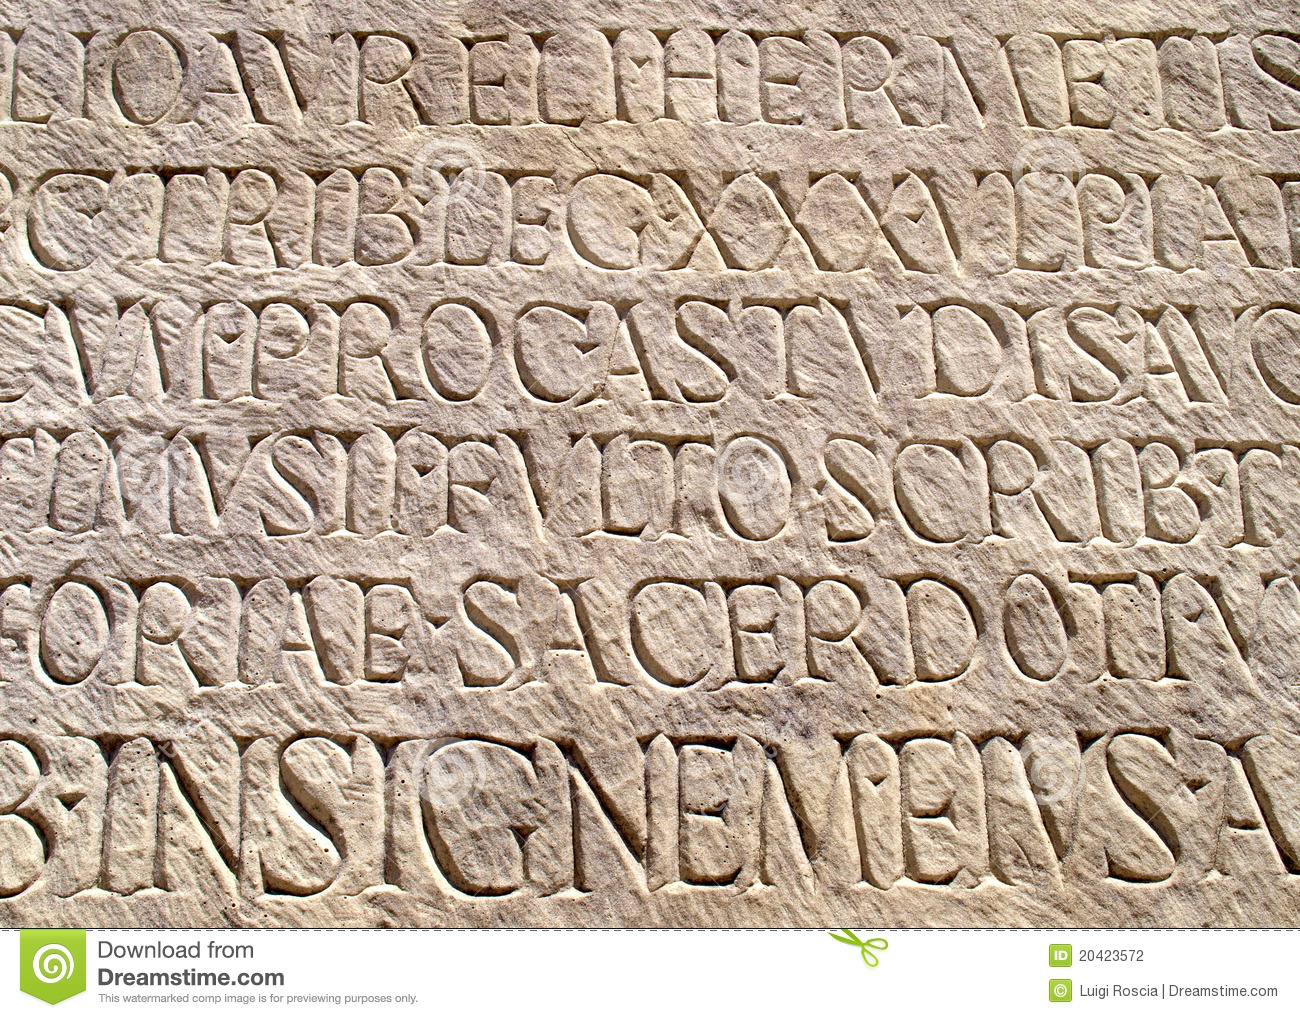 latin writing Latin alphabet: latin alphabet, most widely used alphabetic writing system in the world, the standard script of the english language and the languages of most of.